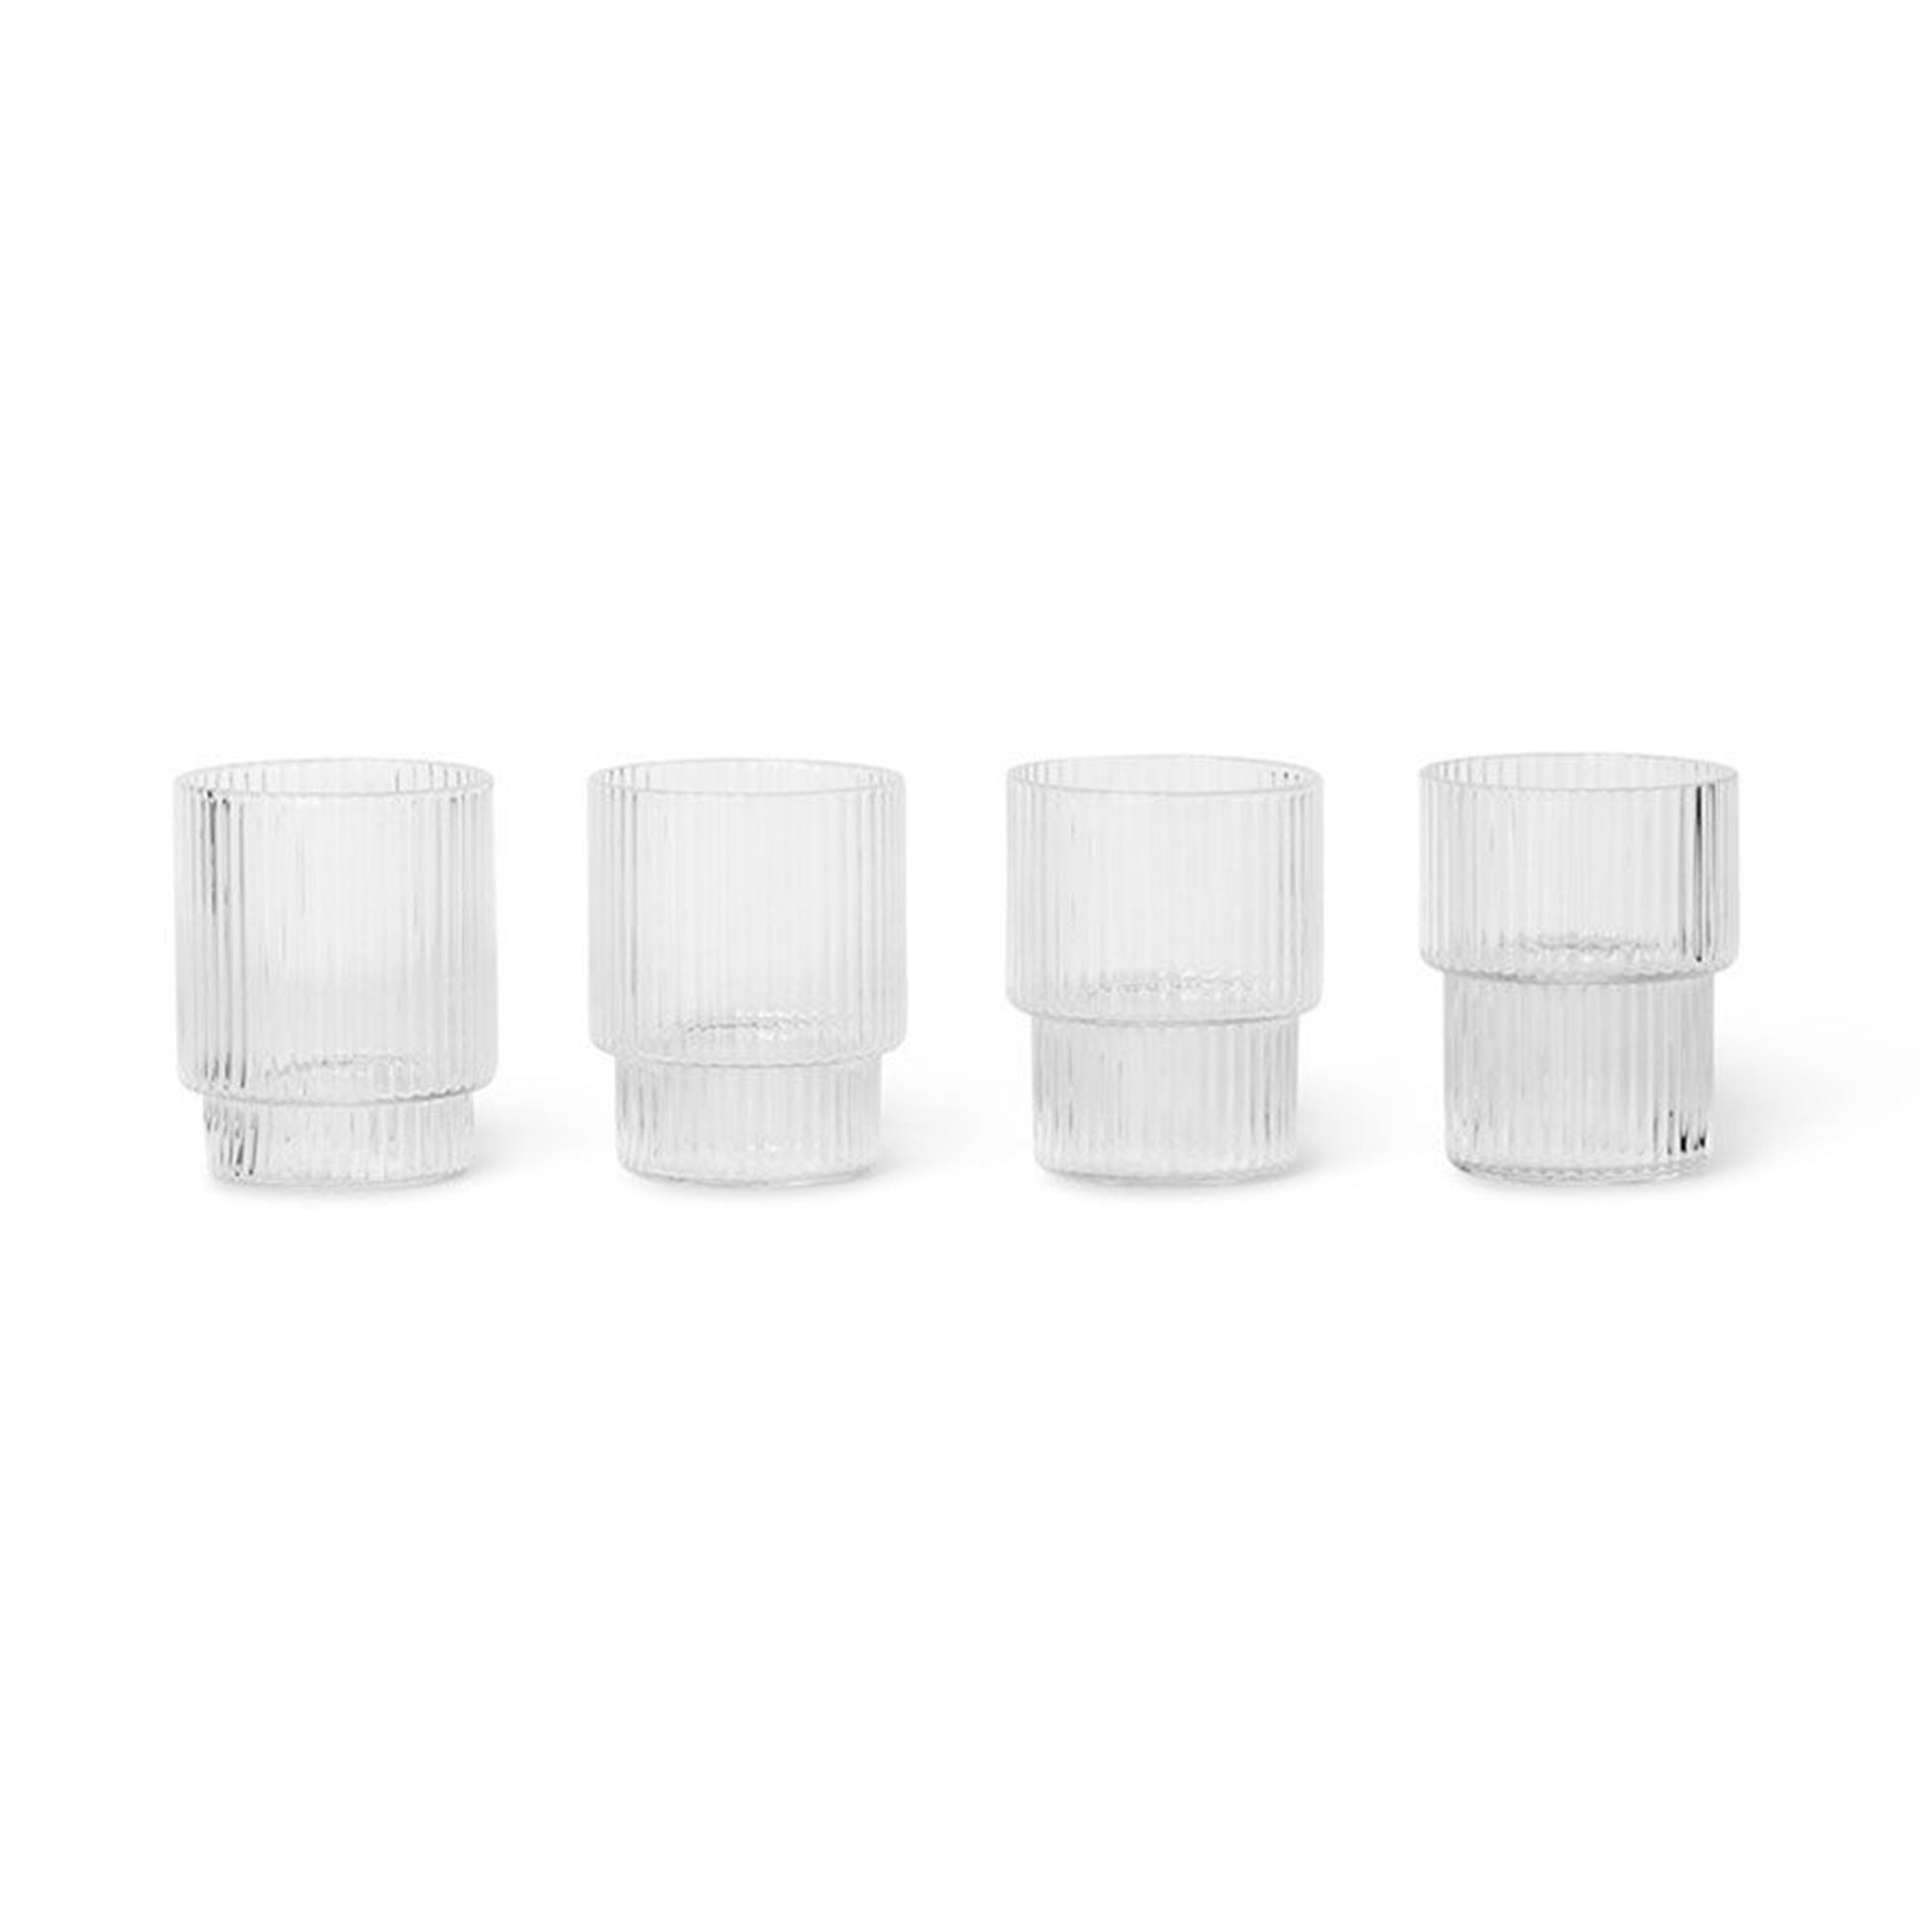 Ferm Living Ripple Small Glasses Set Of 4 - Scandi Minimal